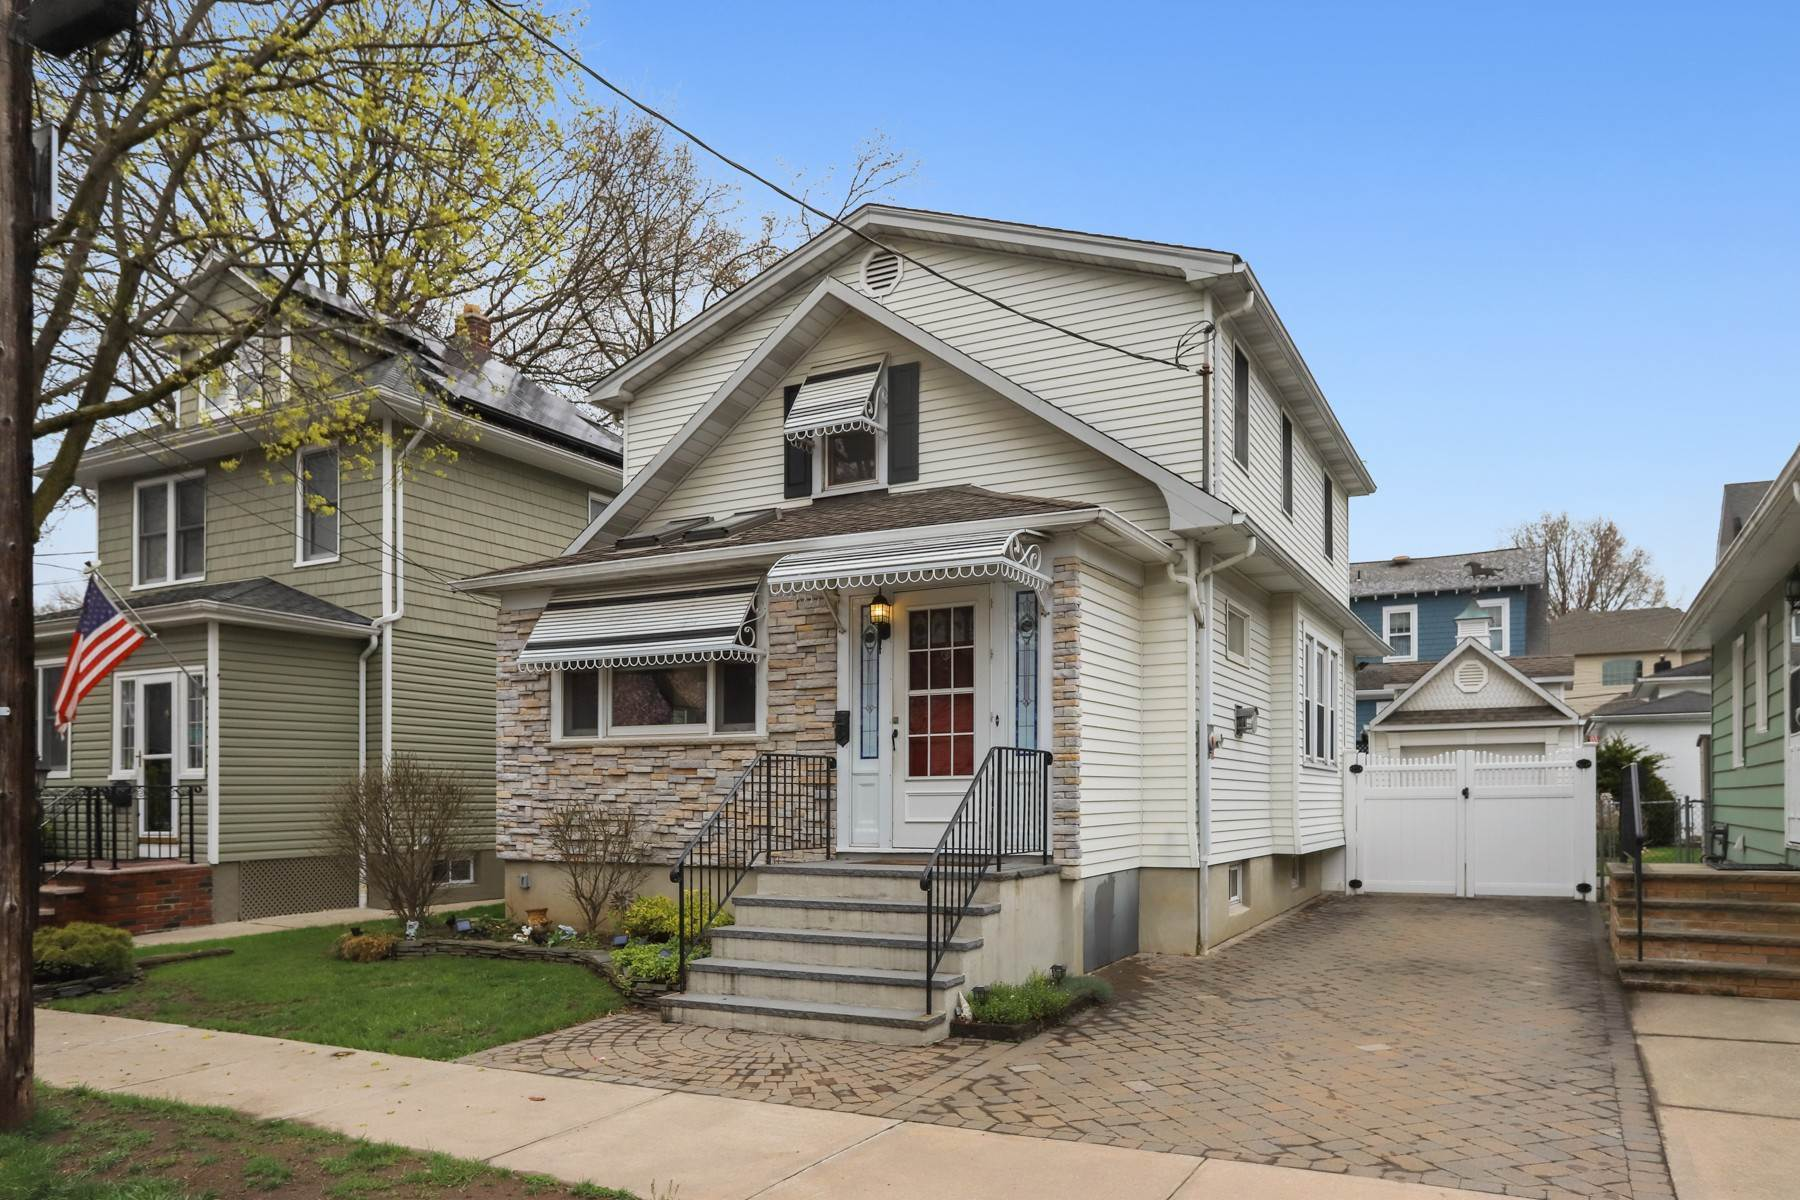 Single Family Homes for Sale at 3 Bedrooms Colonial at Dickie Ave. 245 Dickie Ave Staten Island, New York 10314 United States